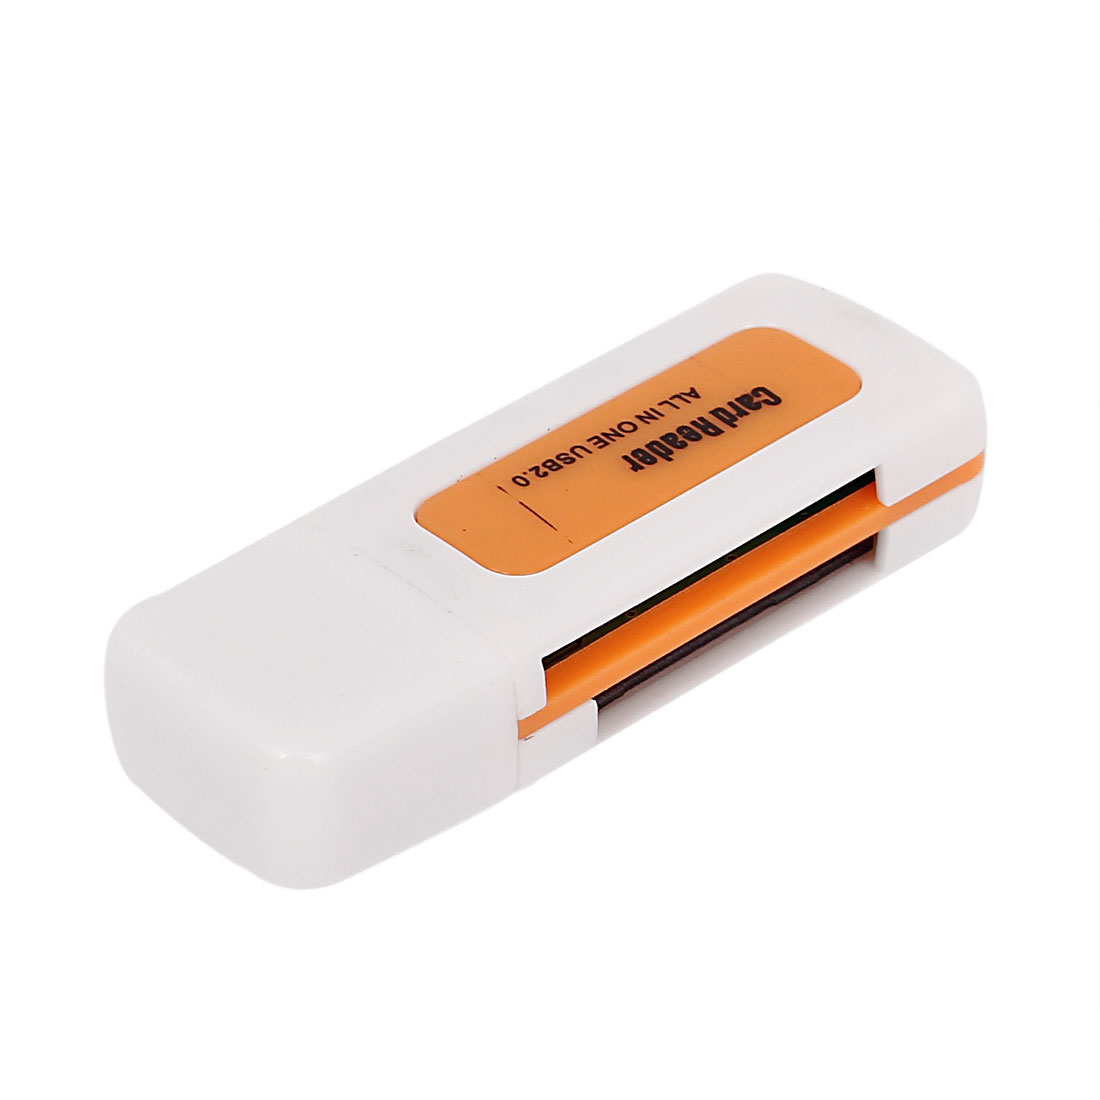 USB 2.0 4 in 1 Memory Multi M2 SD SDHC MS T-Flash Card Reader Orange